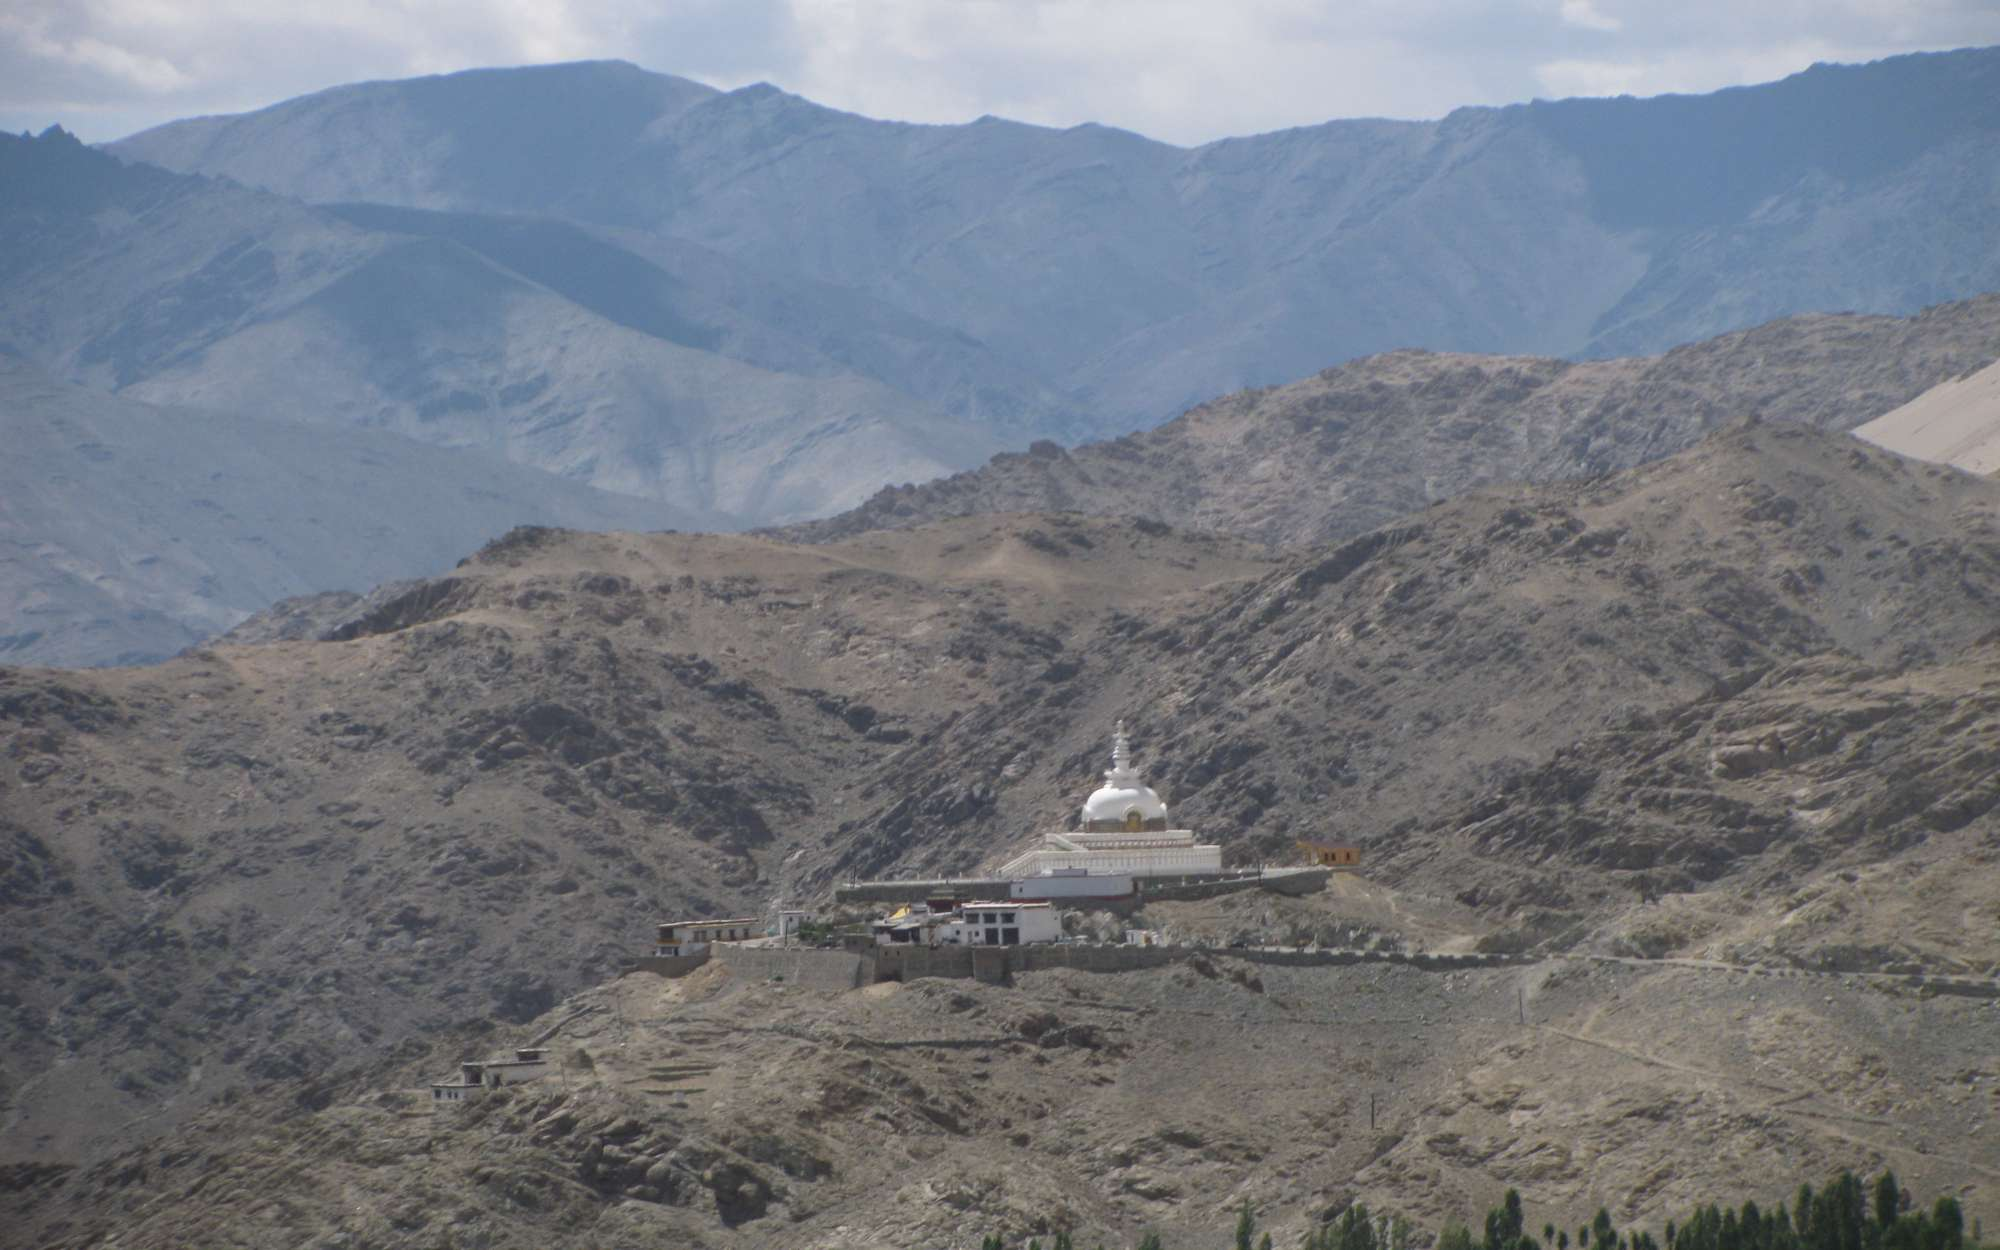 Shanti Stupa from a distance